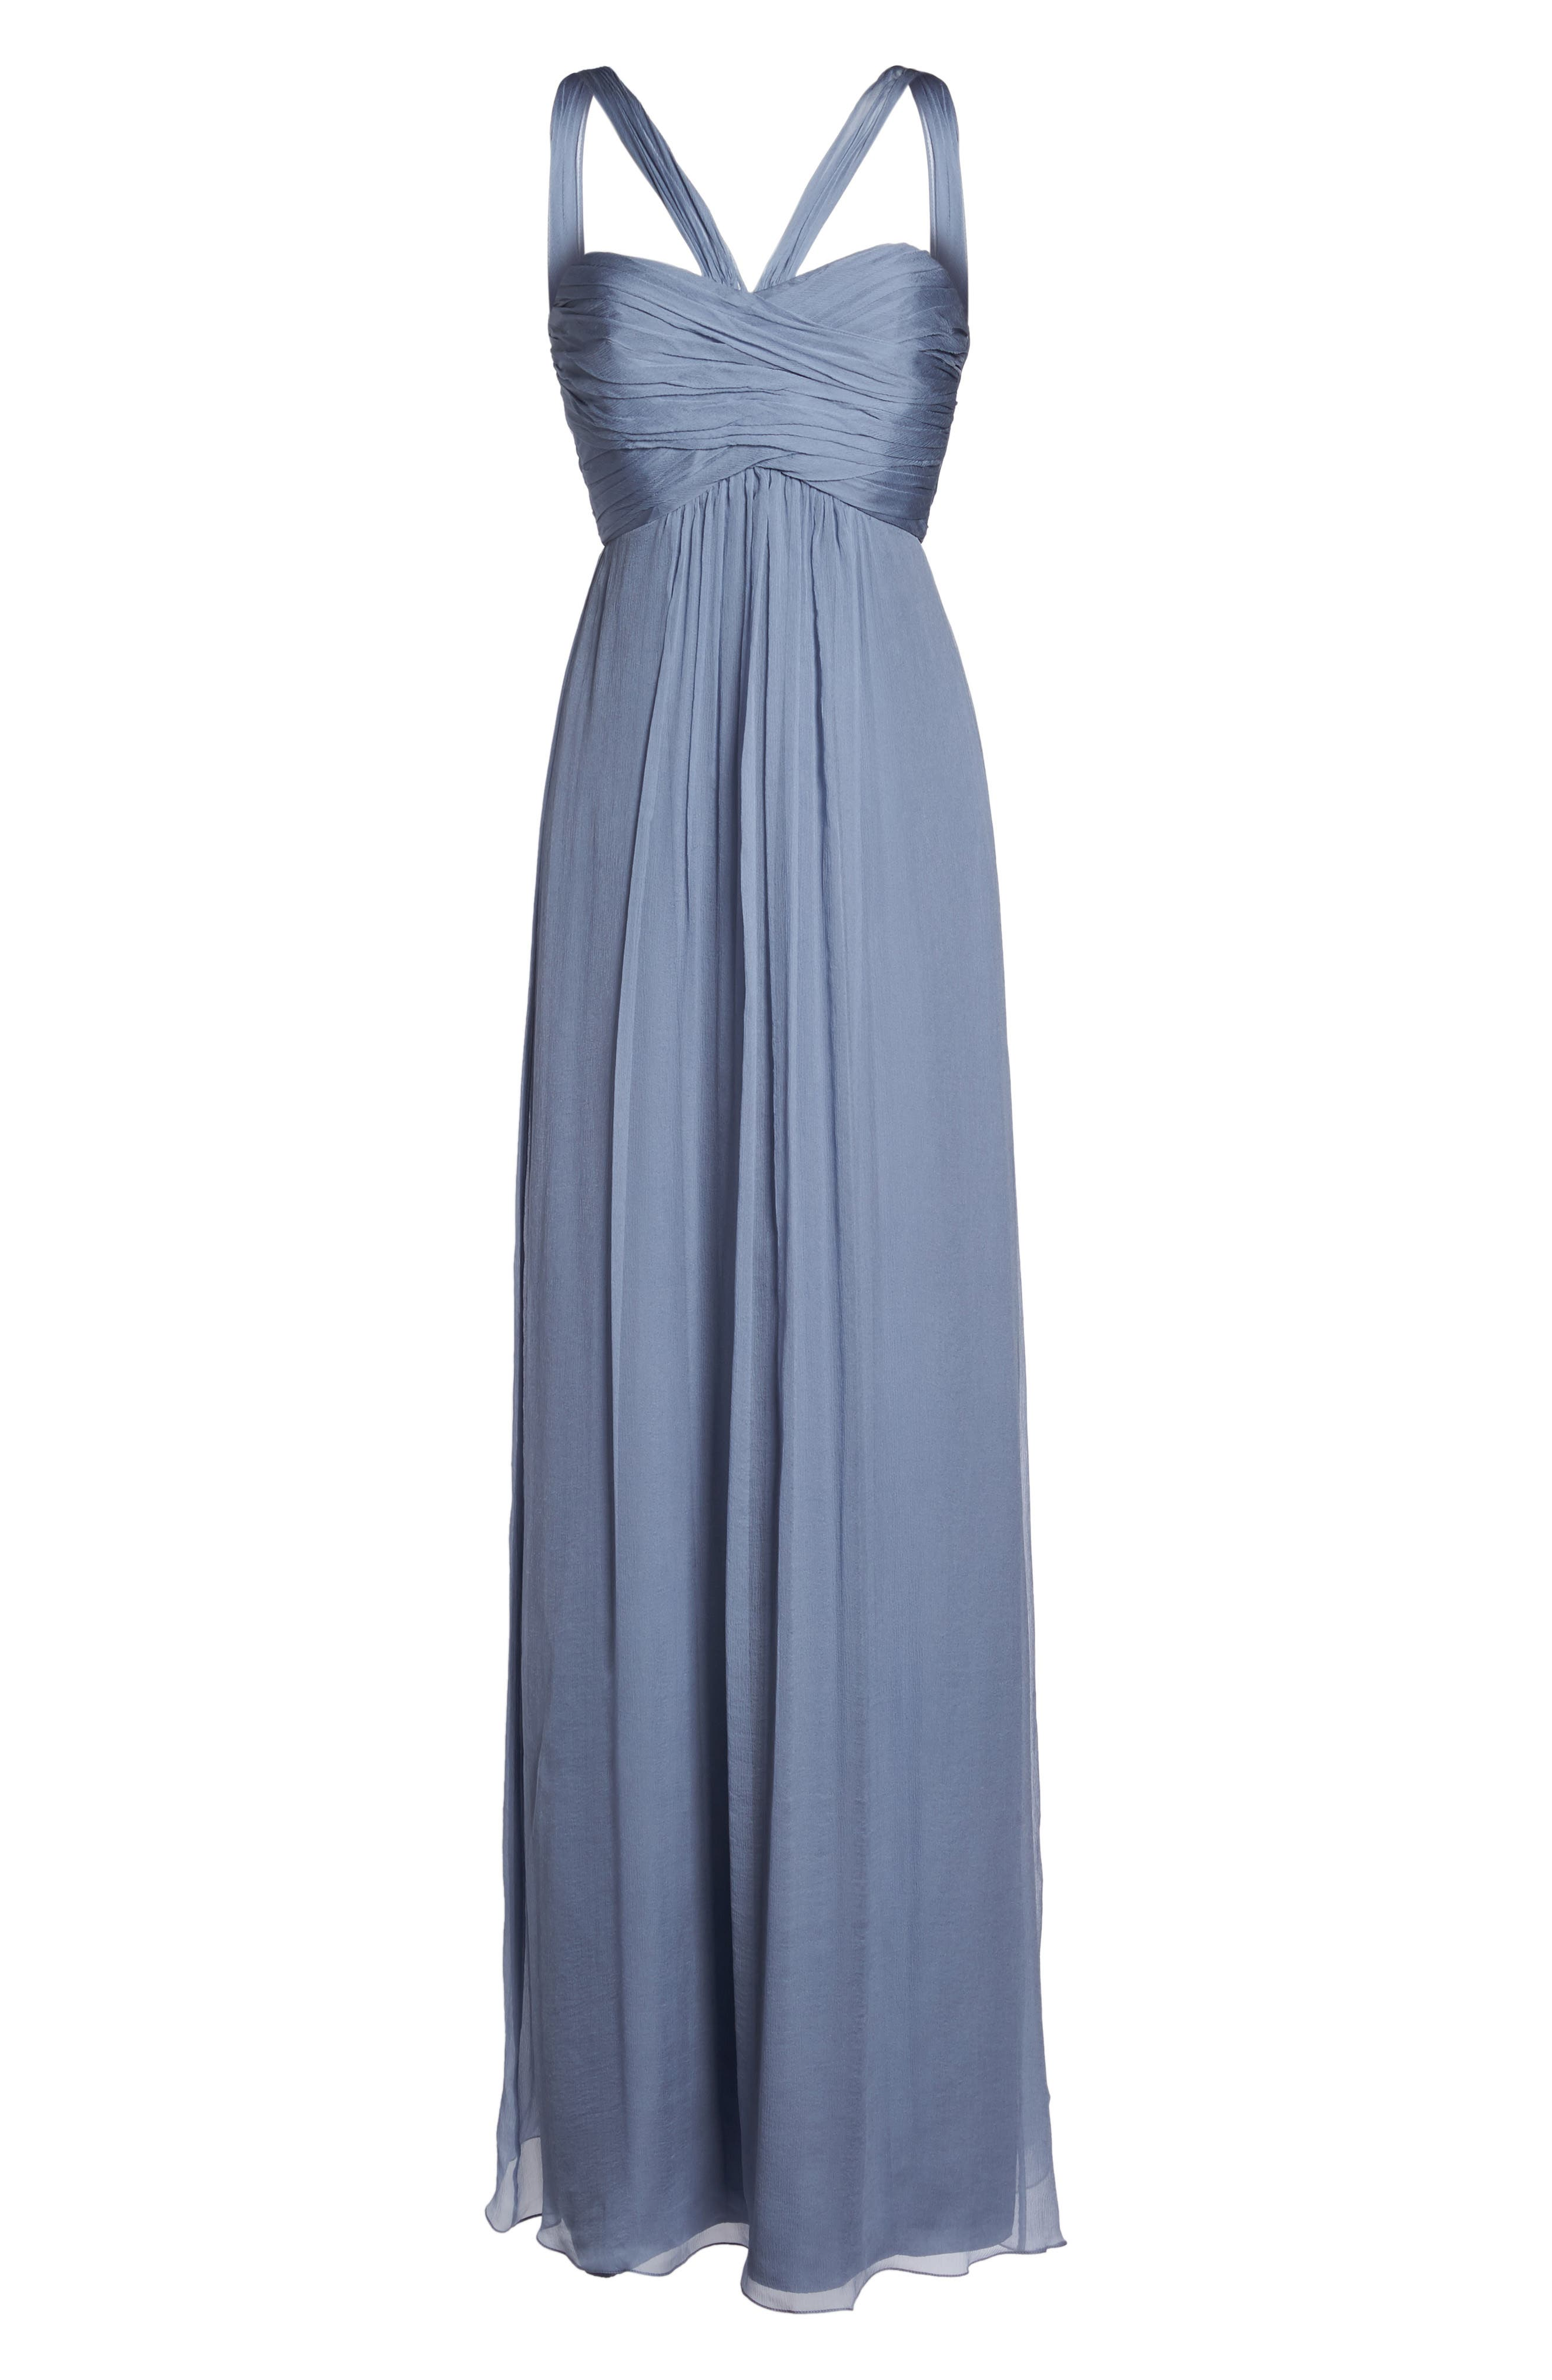 Corbin Crinkled Chiffon Empire Gown,                             Alternate thumbnail 6, color,                             020